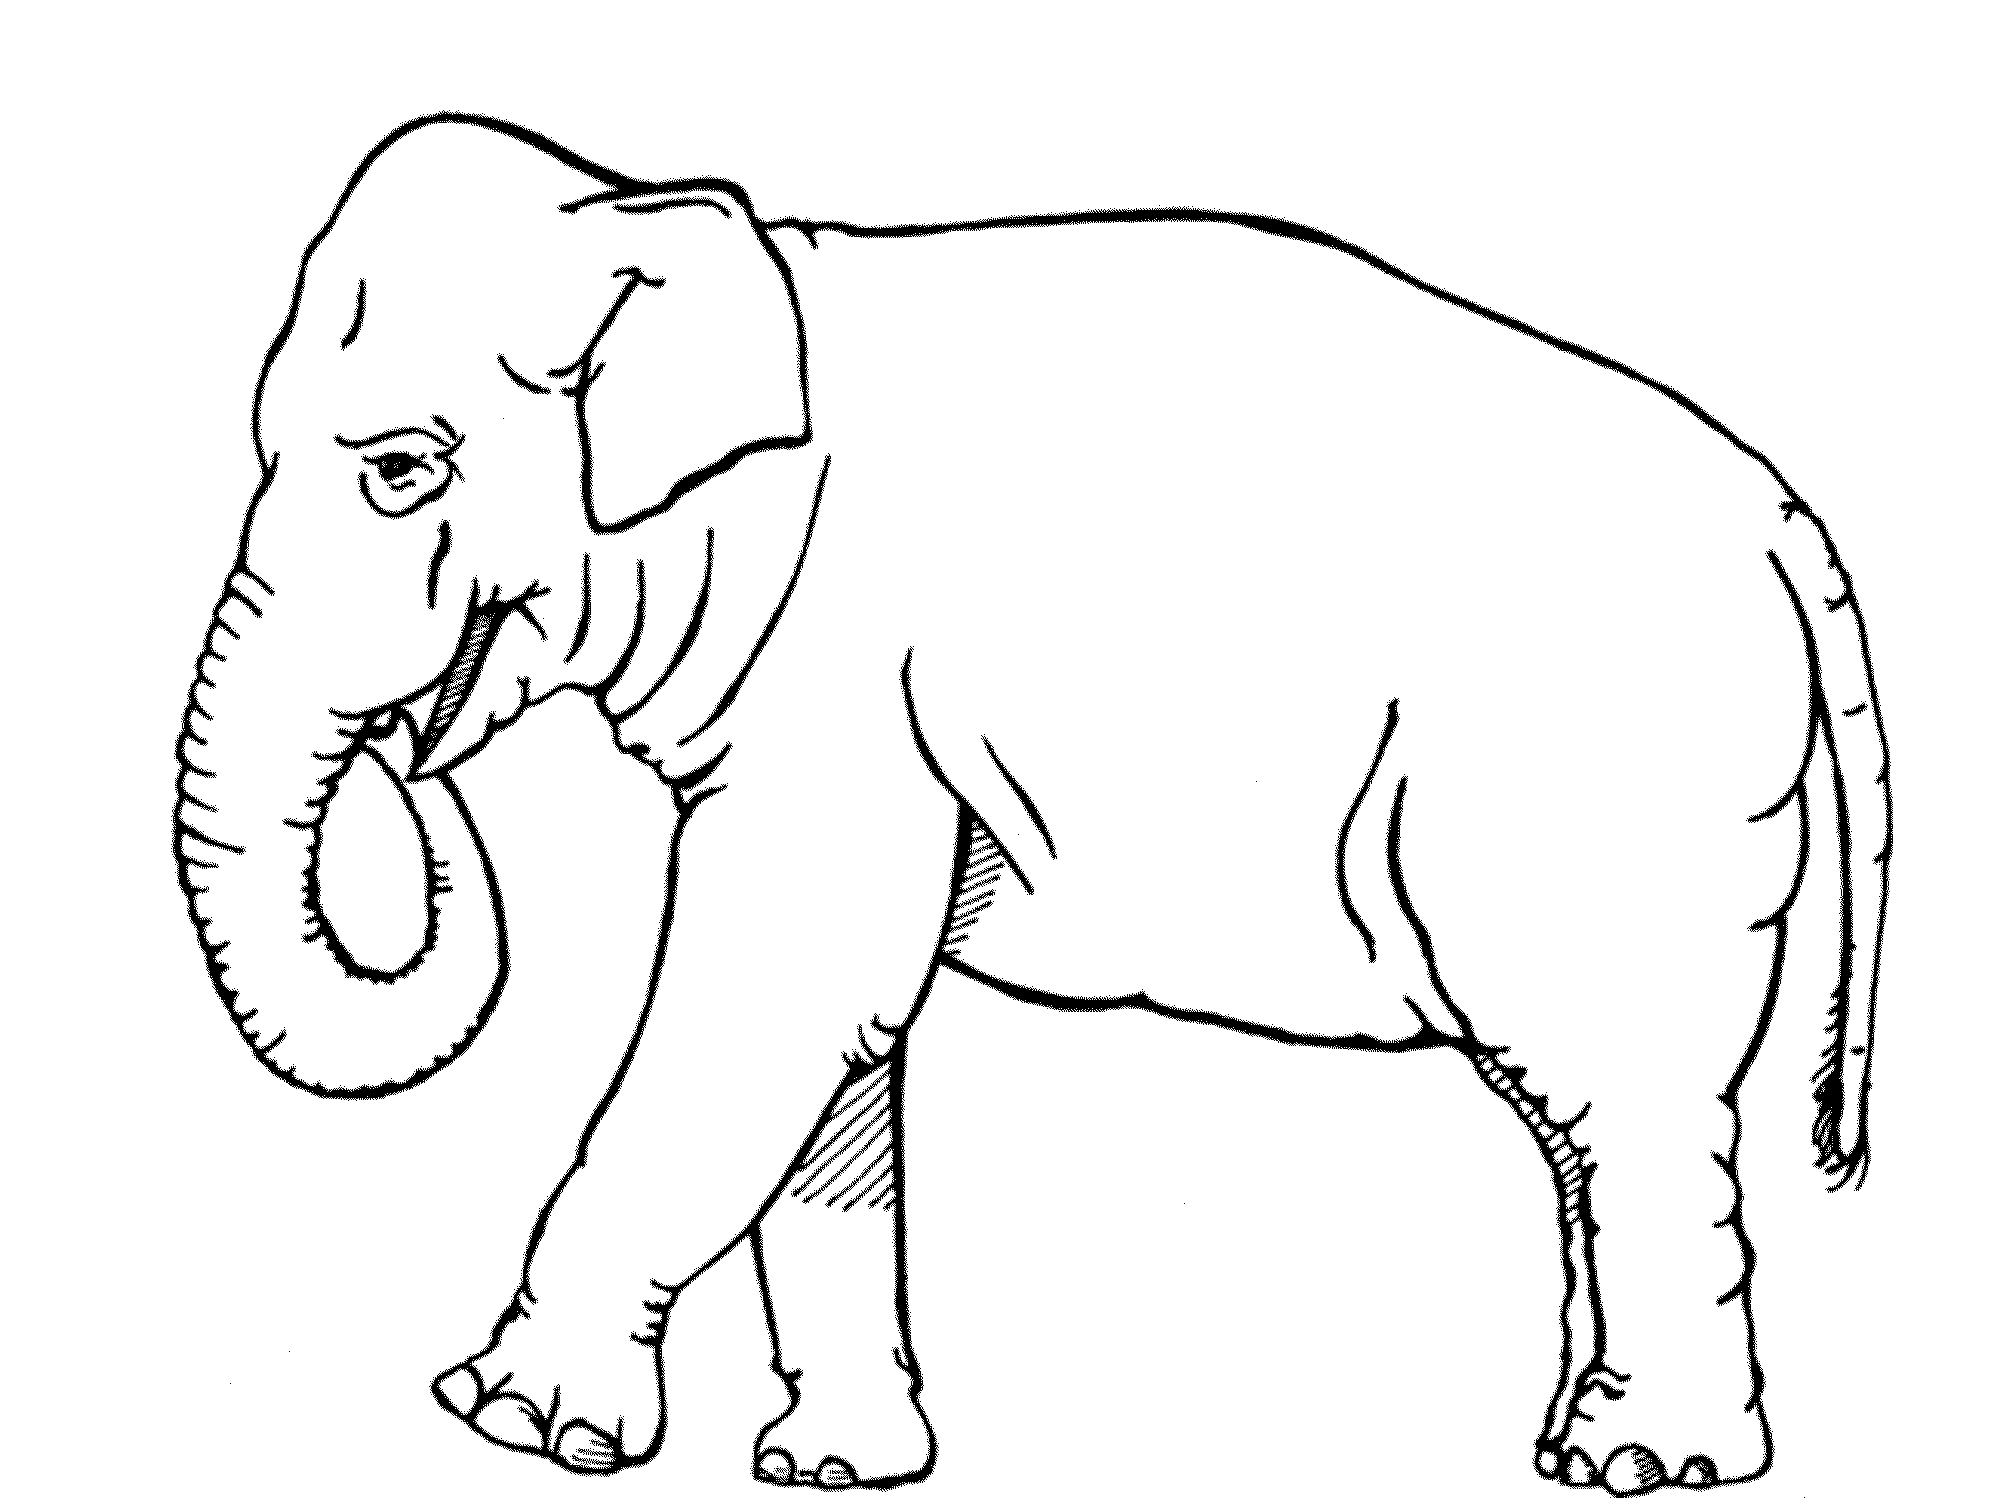 elephant coloring pages transmissionpress 14 elephant coloring pages for kids coloring elephant pages